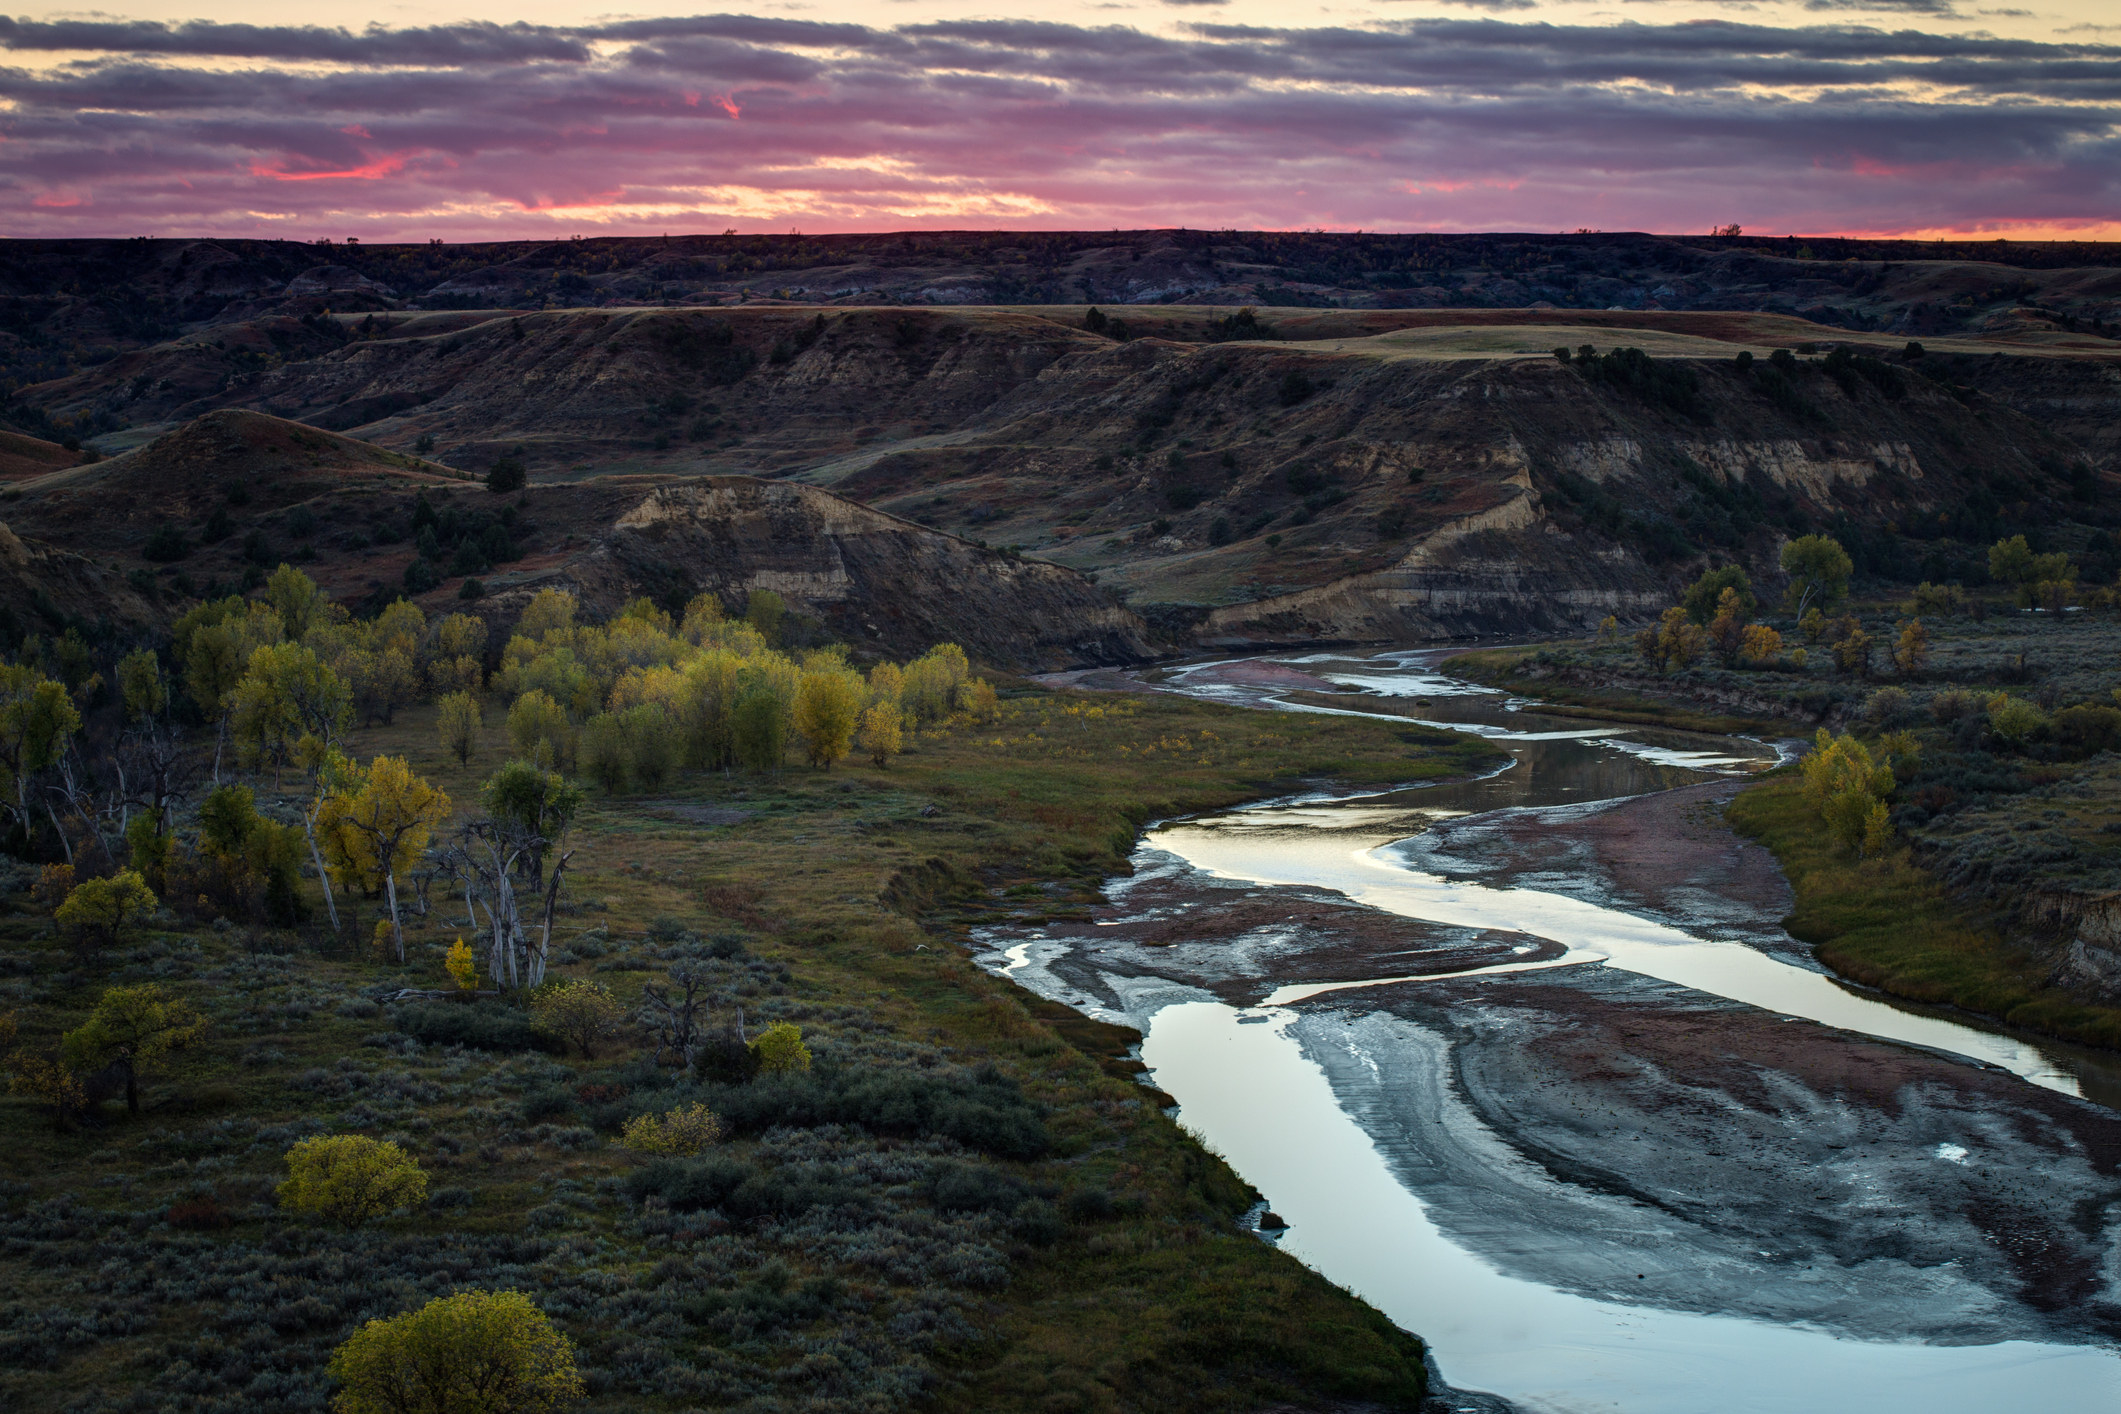 A sunset hovers over a wide shot of greenery, cliffs, and a snaking river